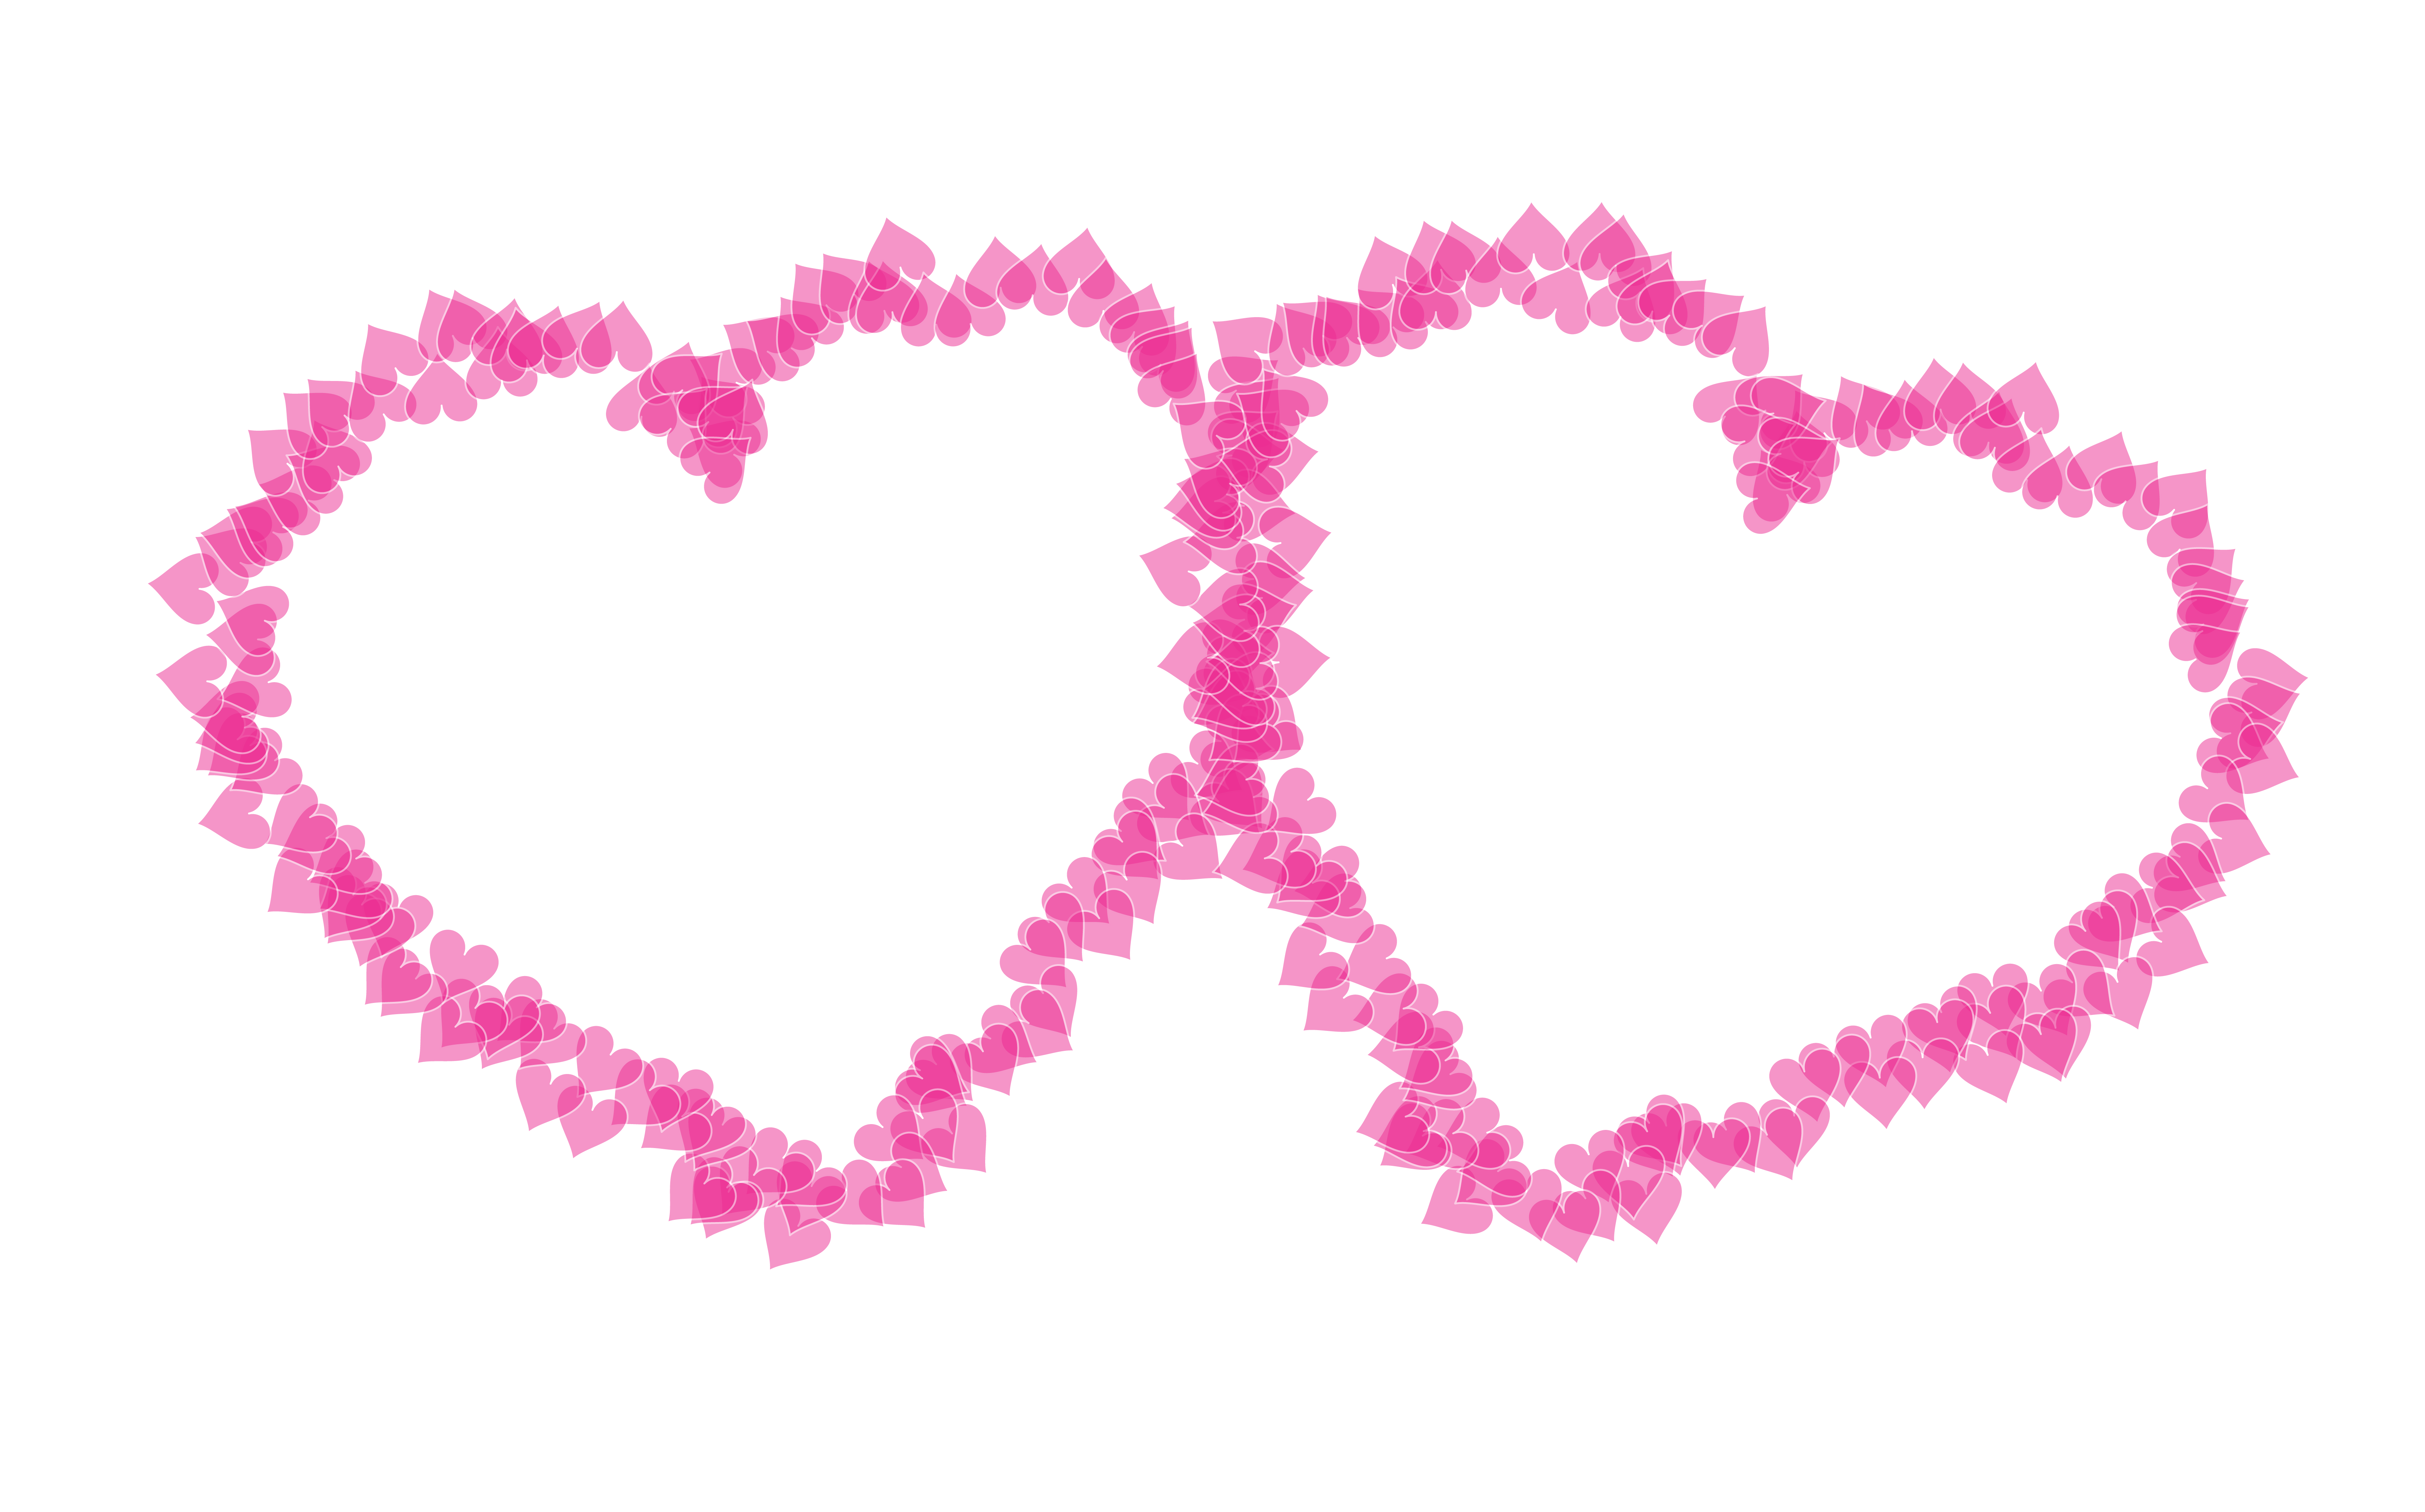 Two Pink Hearts PNG Image - PurePNG | Free transparent CC0